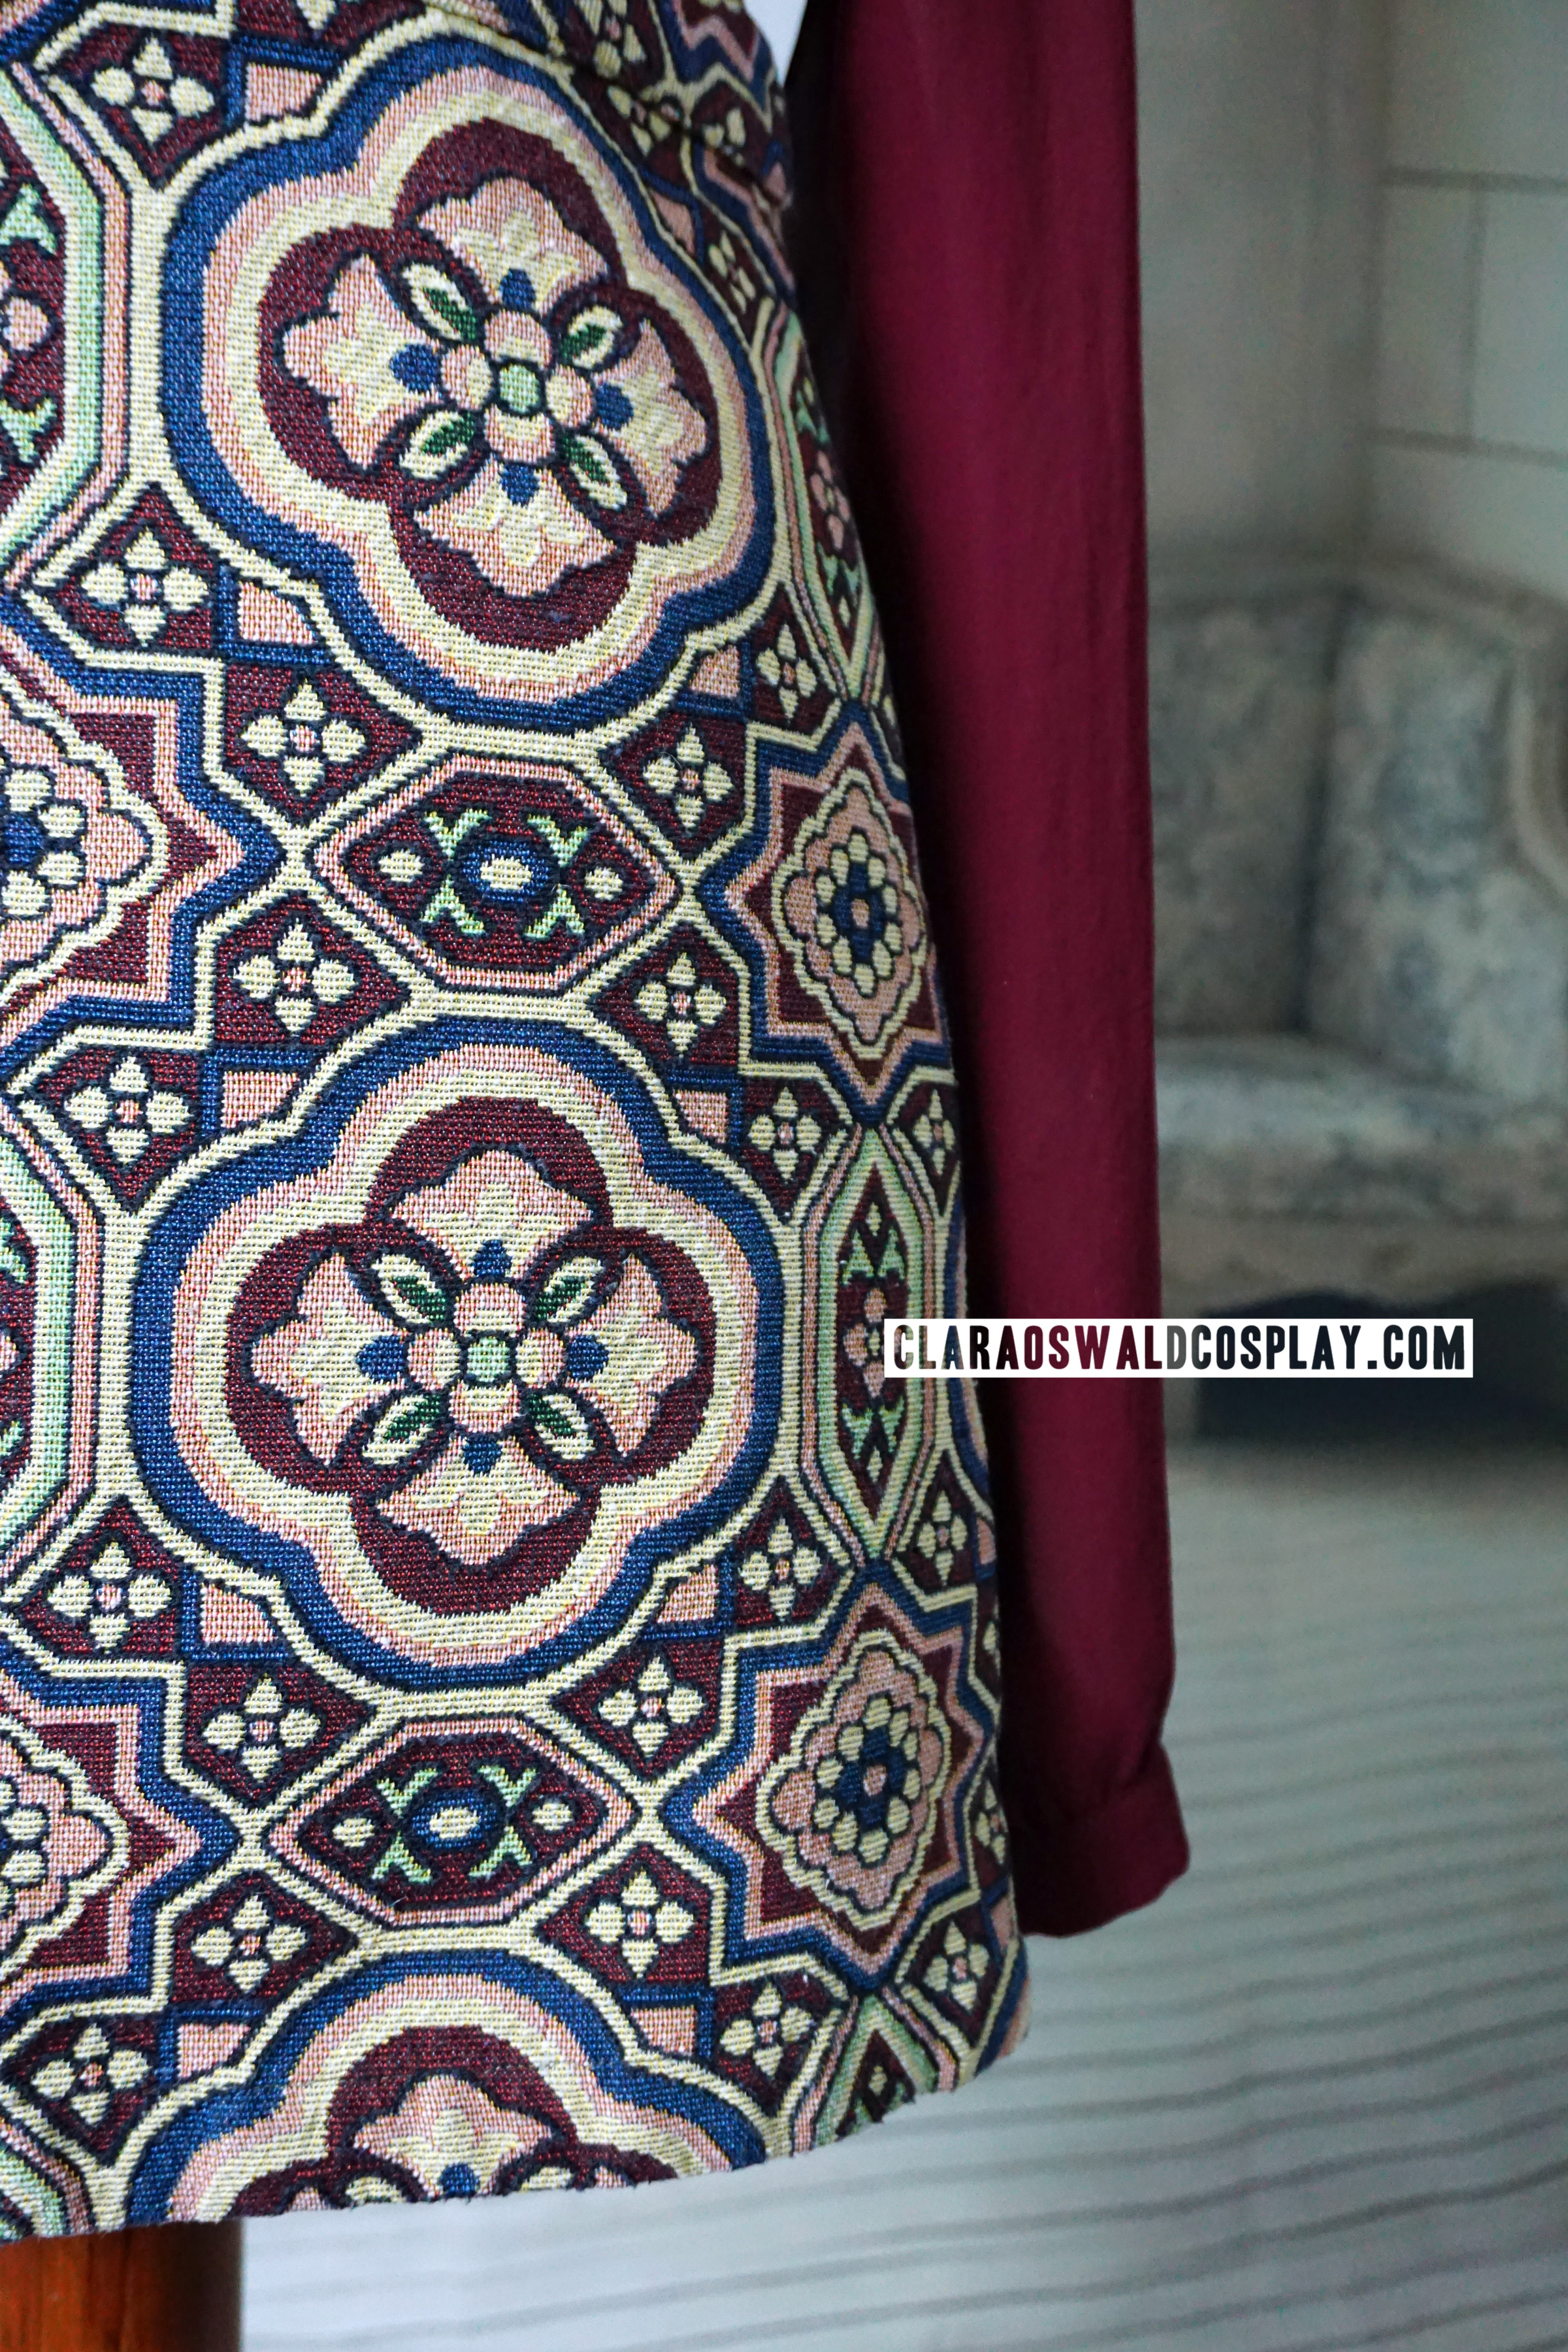 A closer look at Clara Oswald's Topshop A-Line Tapestry Skirt